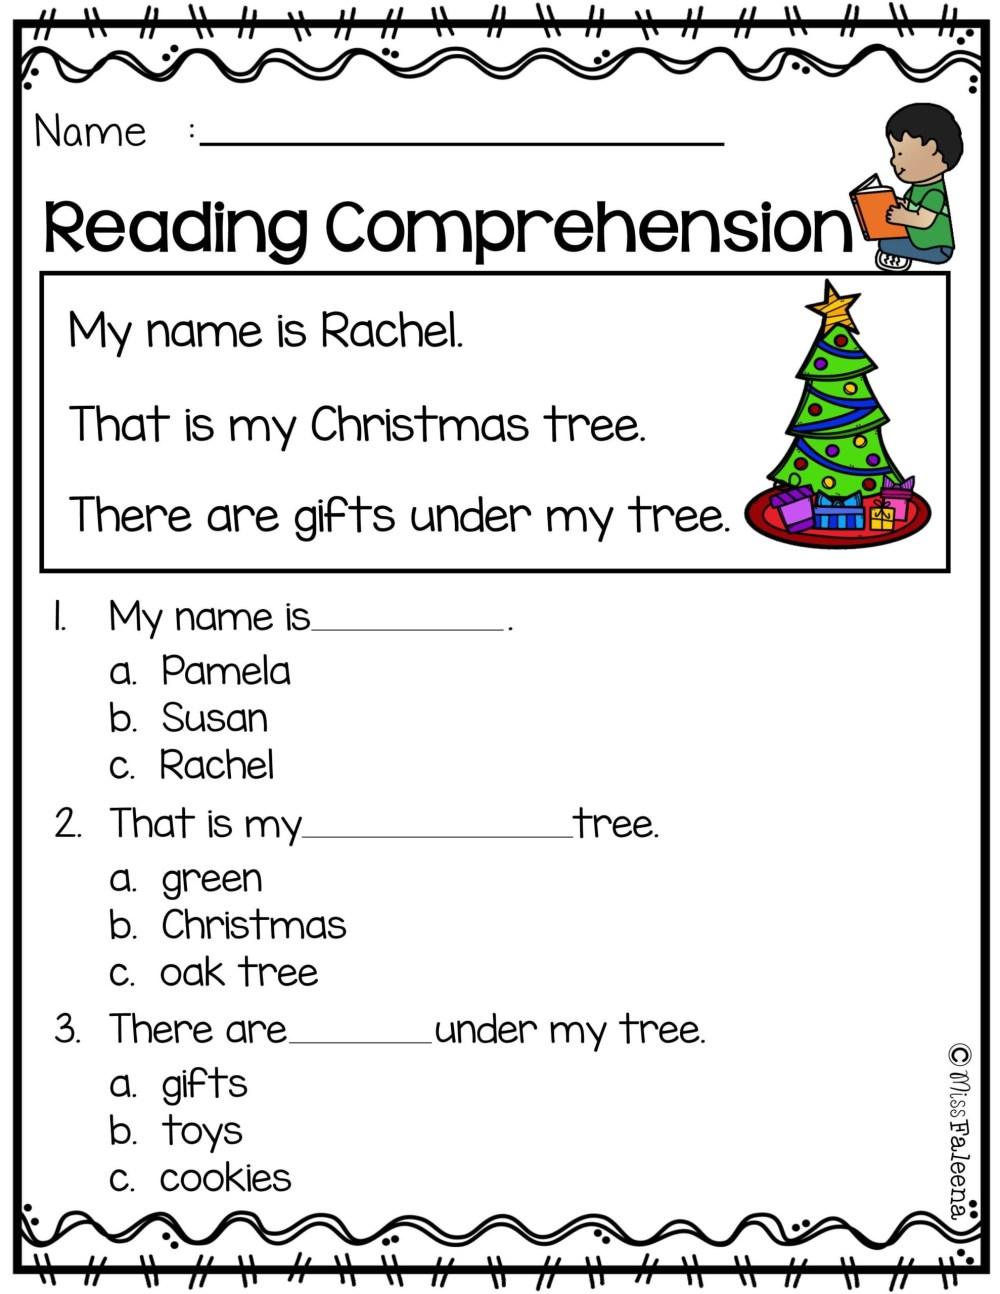 medium resolution of Christmas Themed Worksheets 3rd Grade   Printable Worksheets and Activities  for Teachers